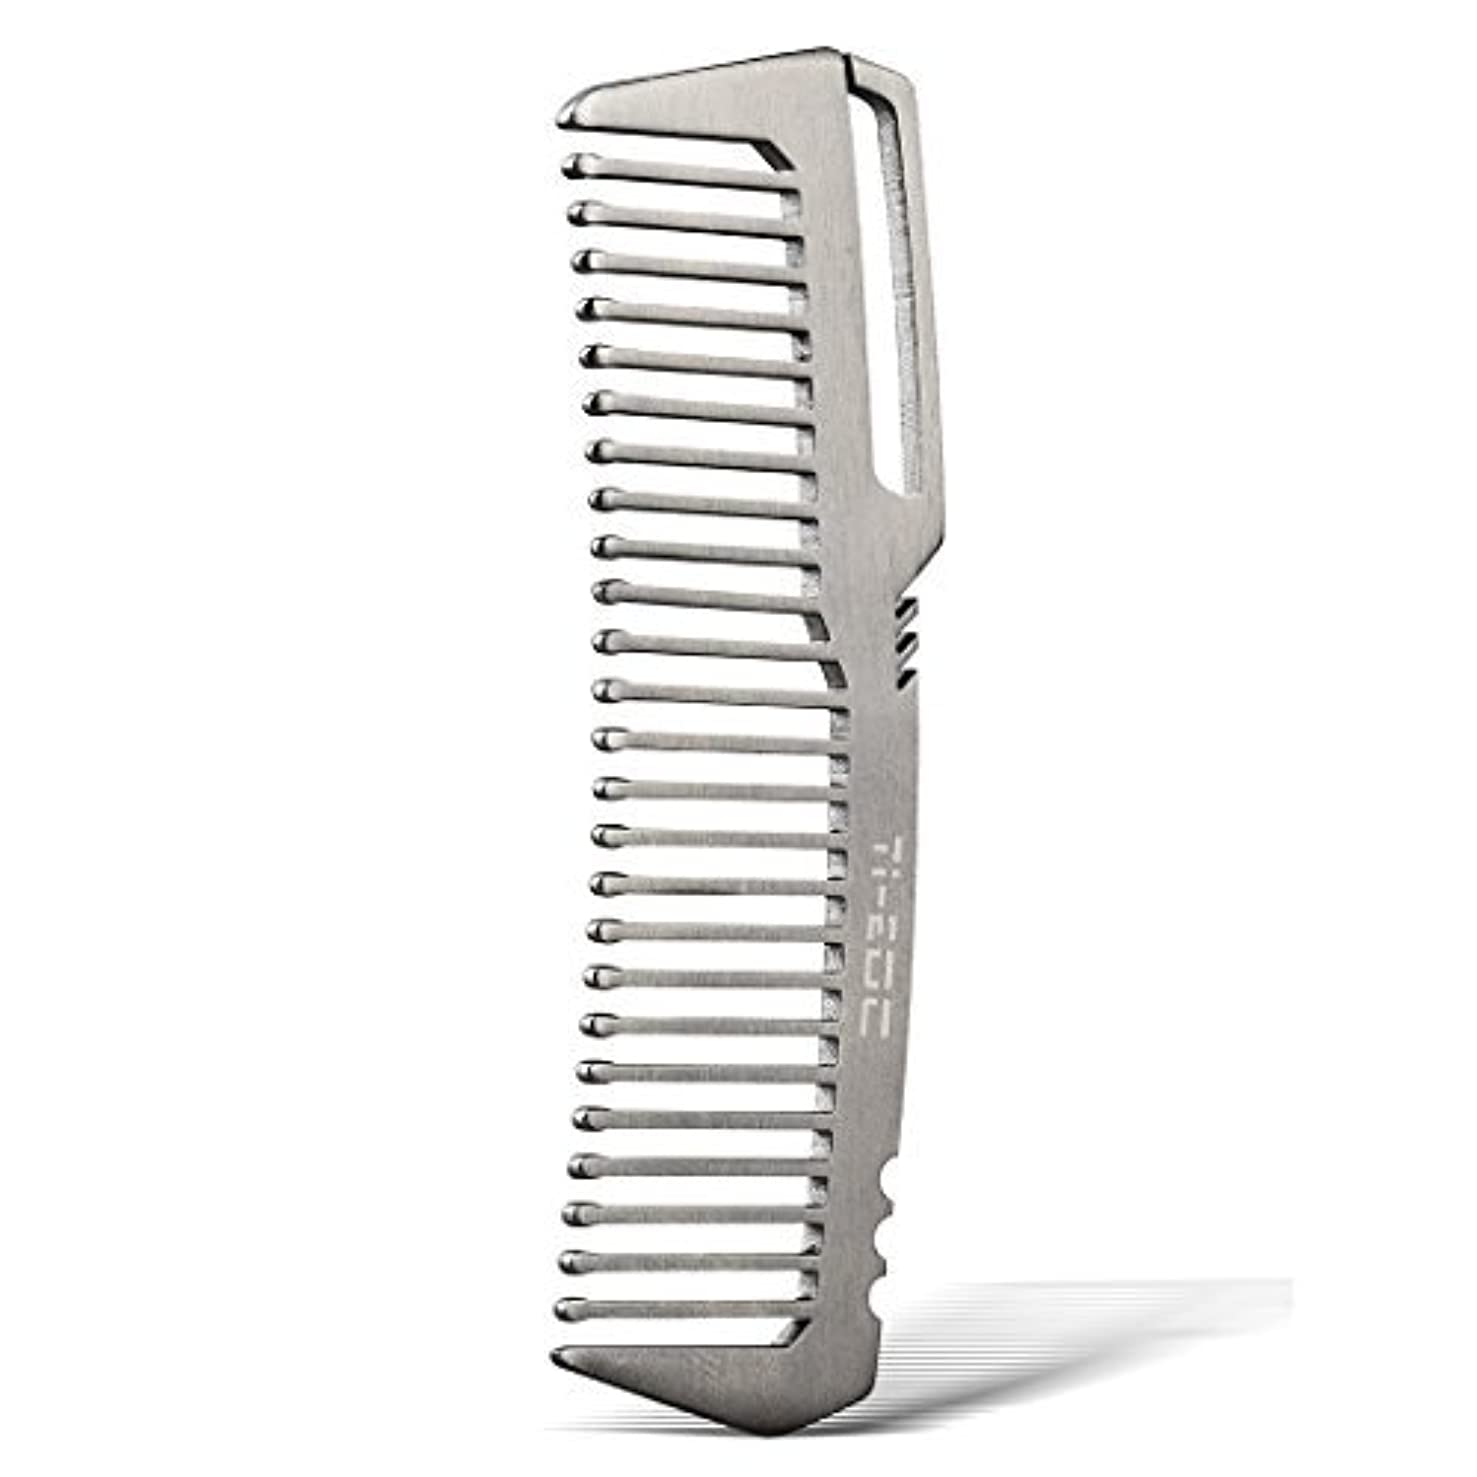 TI-EDC Titanium Hair Beared Comb Handmade Premium Eco-friendly Durable Pocket Wallet Comb [並行輸入品]